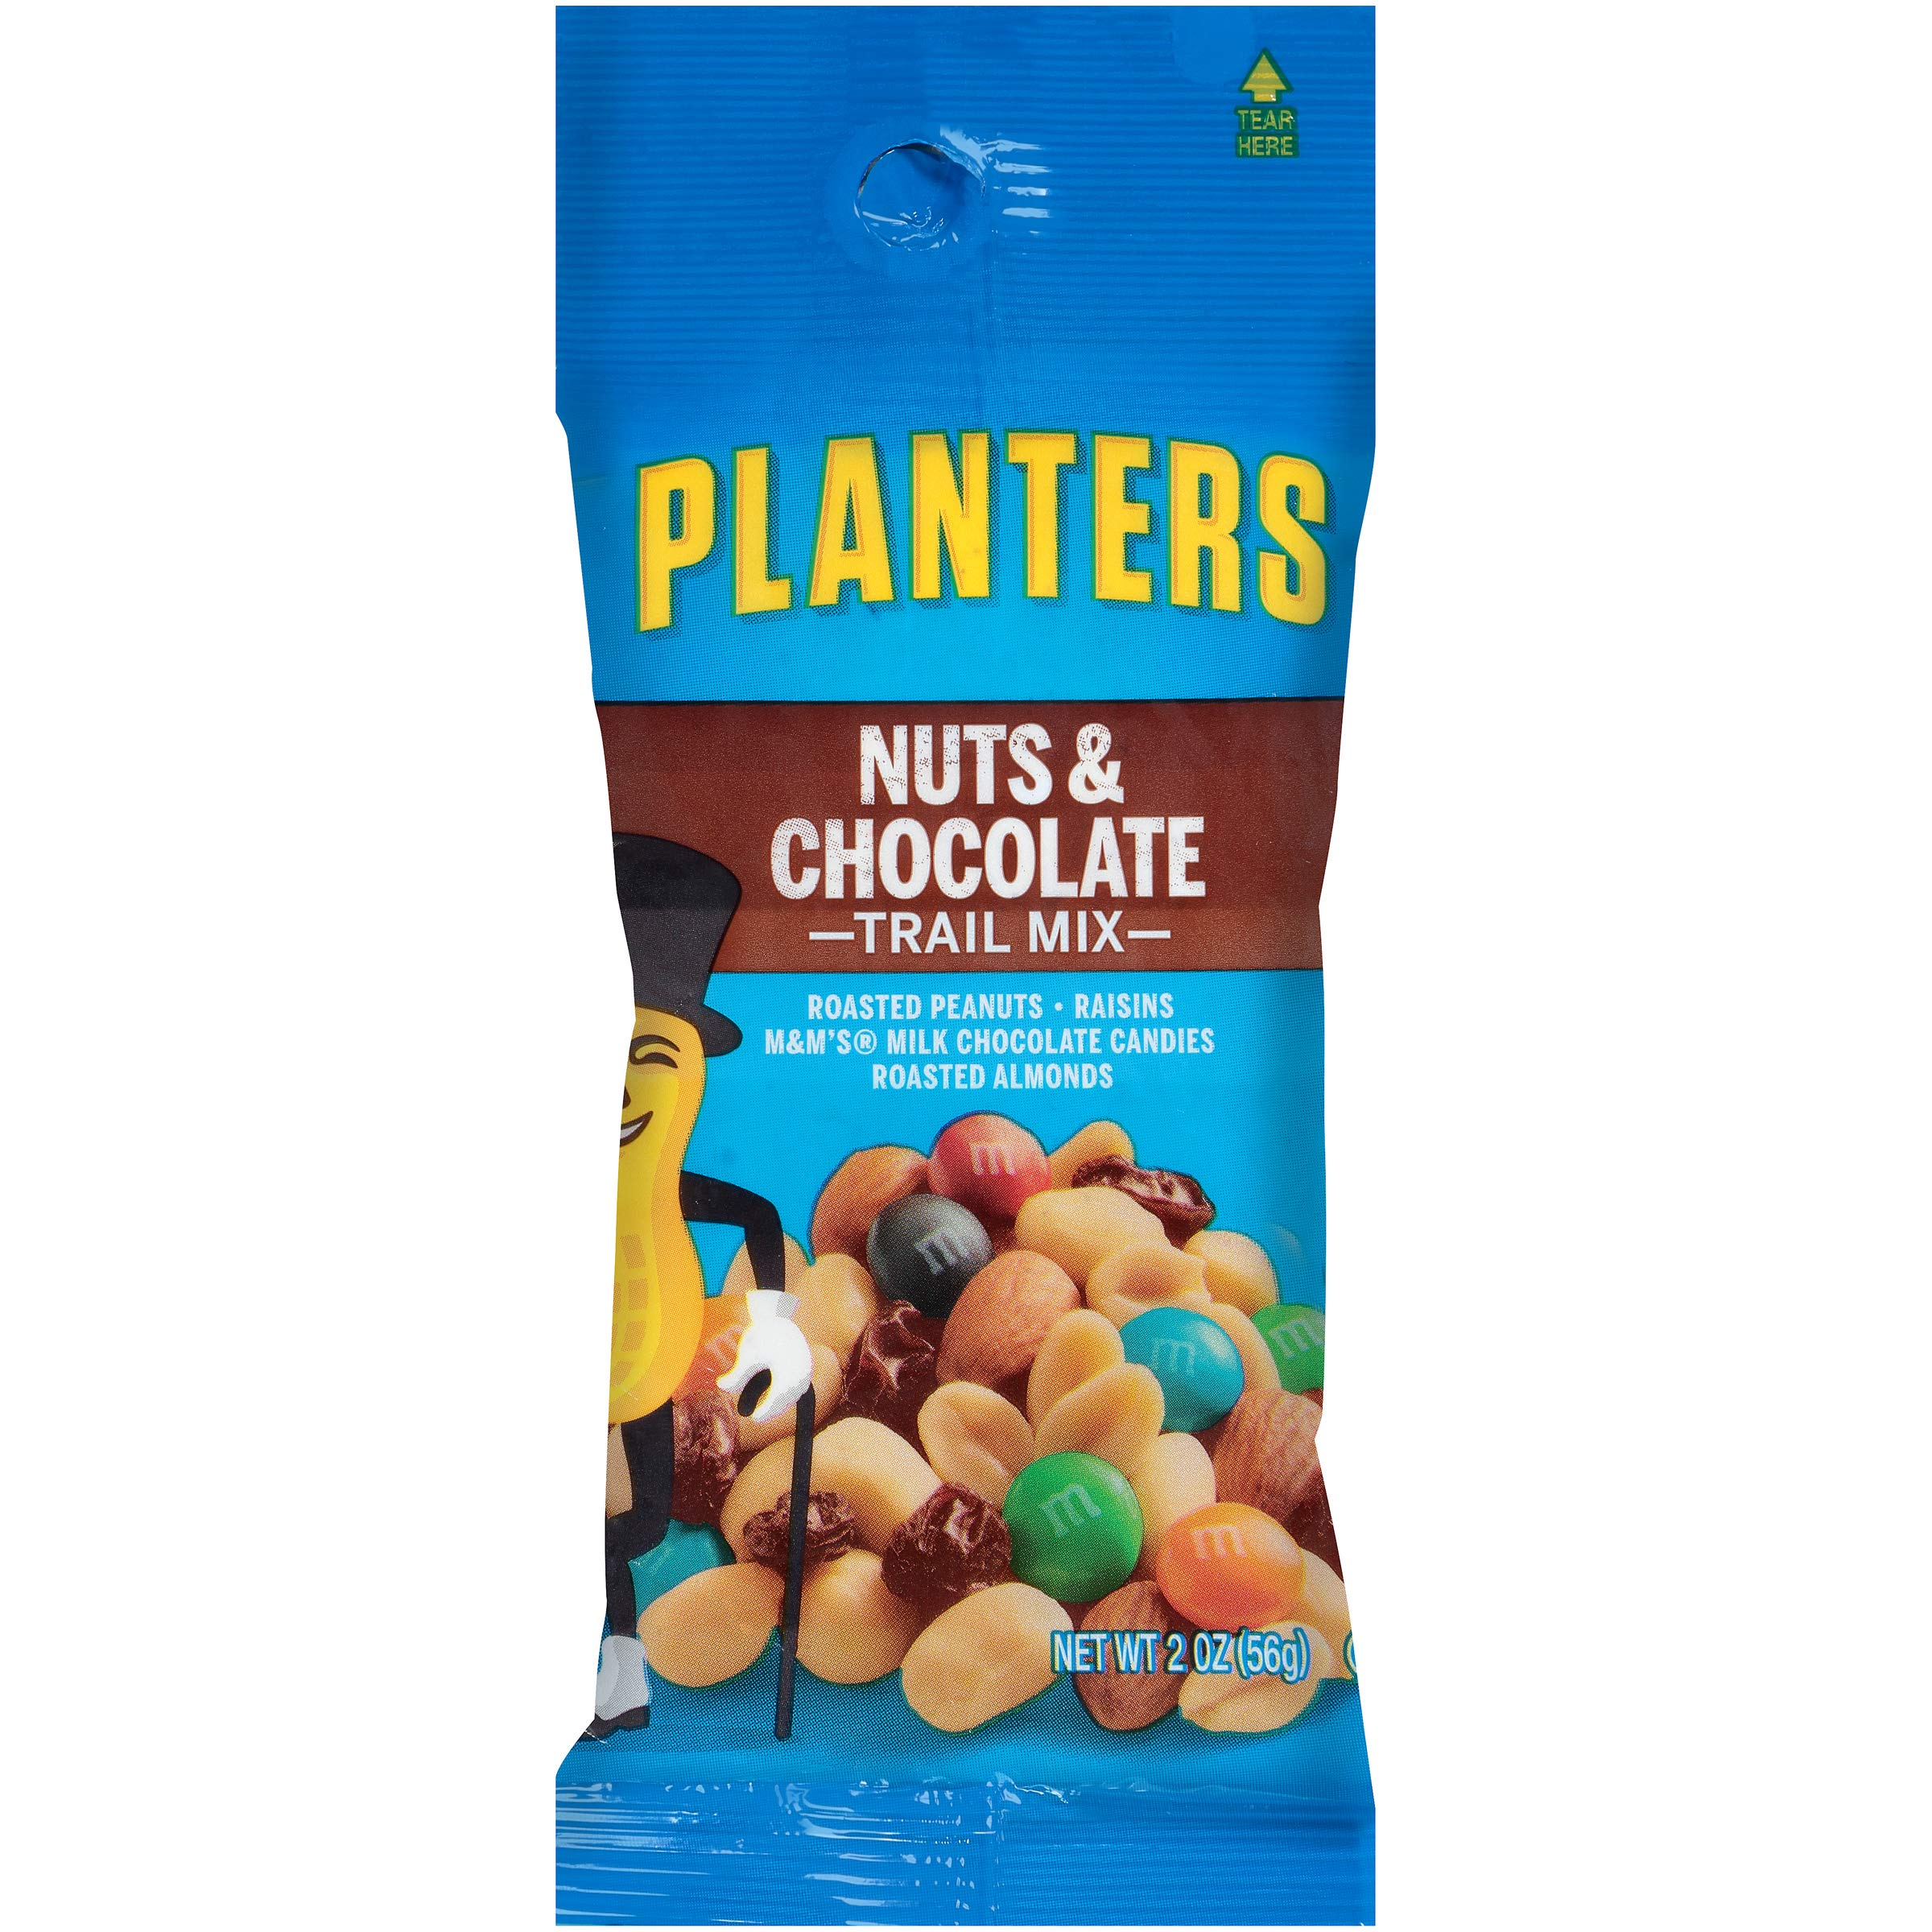 Planters Nuts & Chocolate M&M's Trail Mix, 2 oz Bag (Pack of 72)